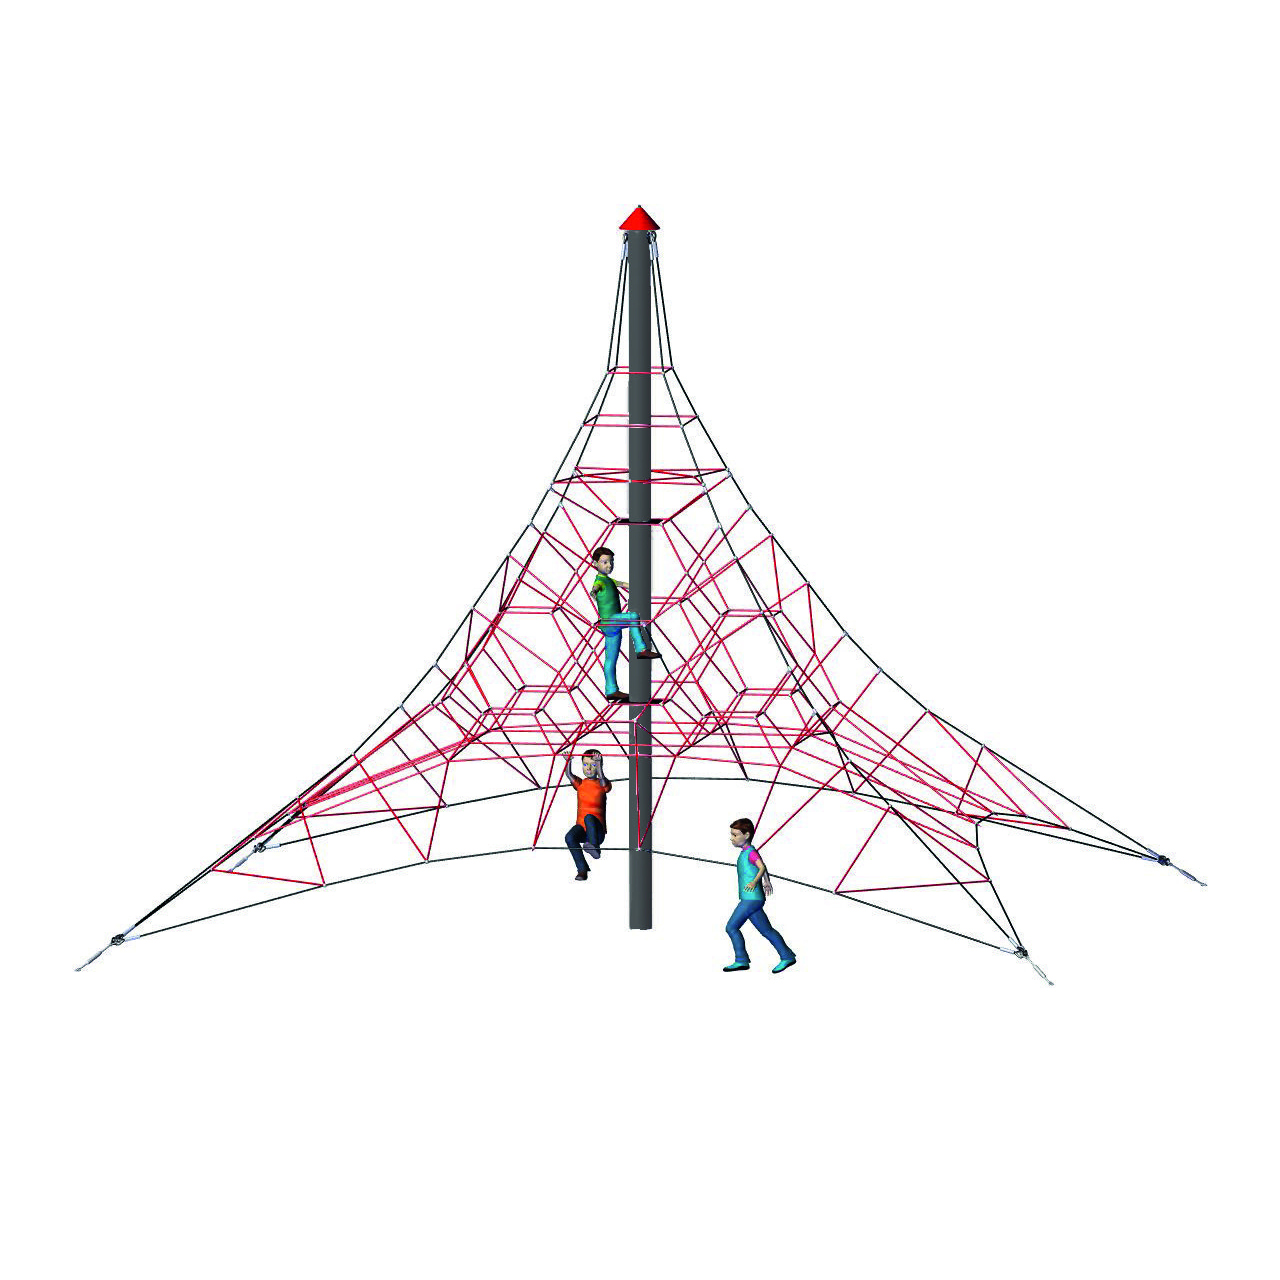 4-Sided Spider Pyramid Net Climber 6-4 (244-inch install height)